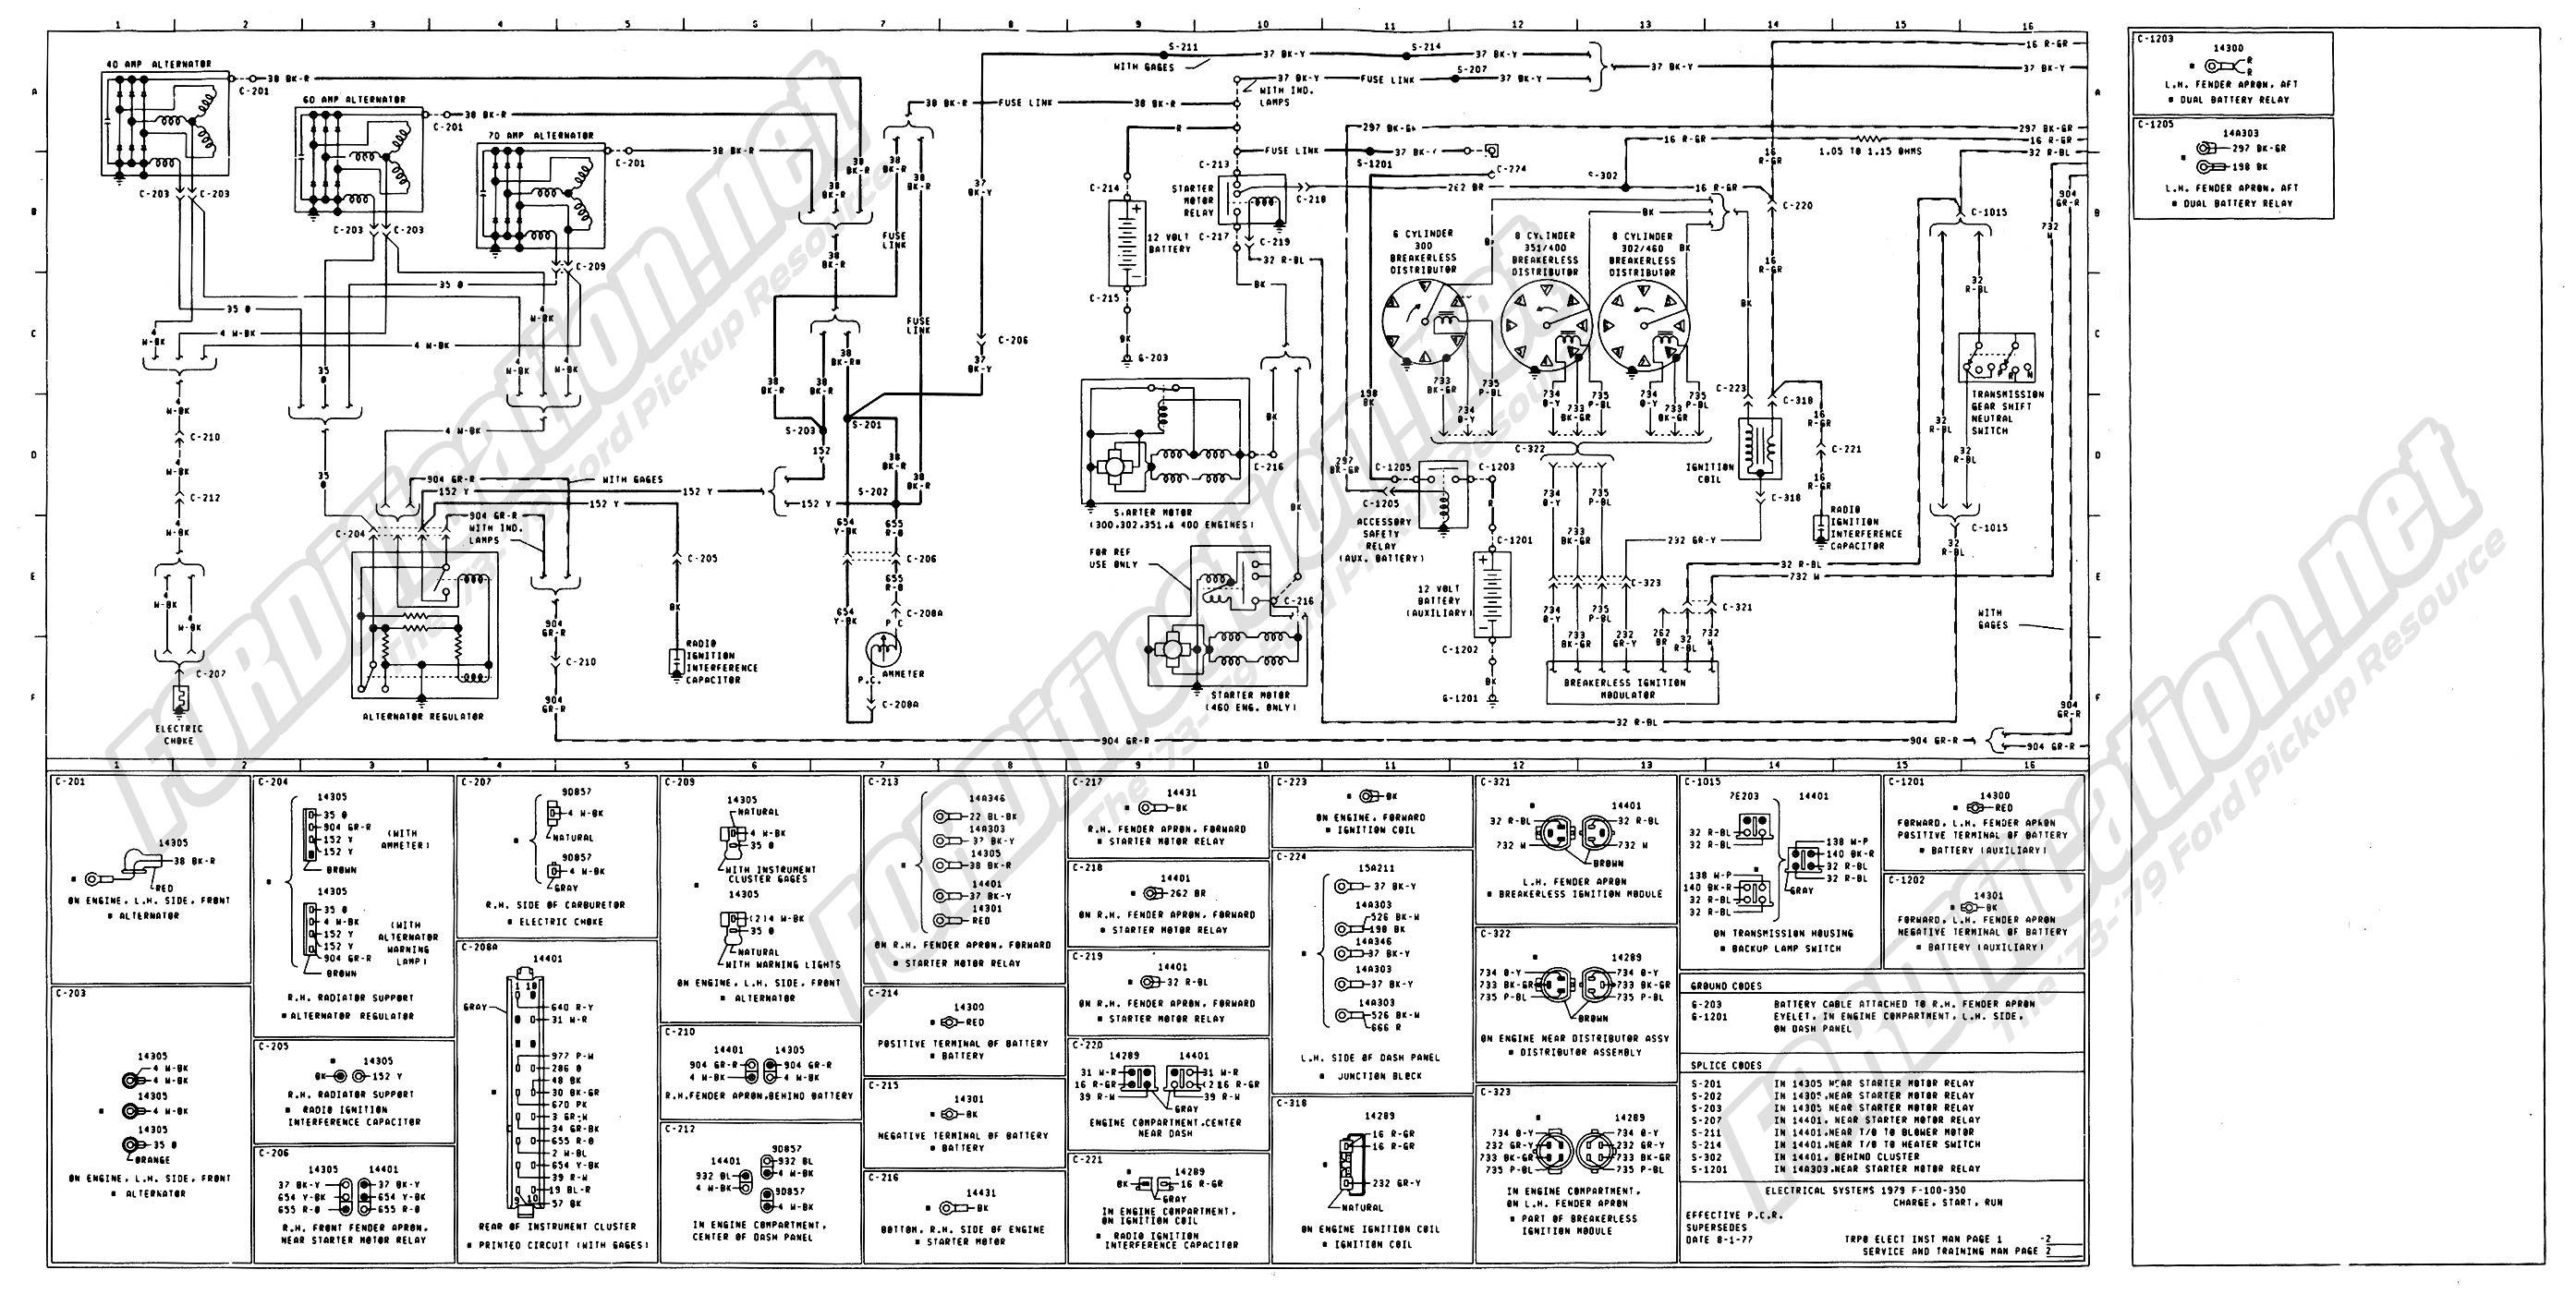 wrg 0704] ford truck wiring1973 1979 ford truck wiring diagrams \u0026 schematics fordification net ford ignition coil wiring diagram wiring